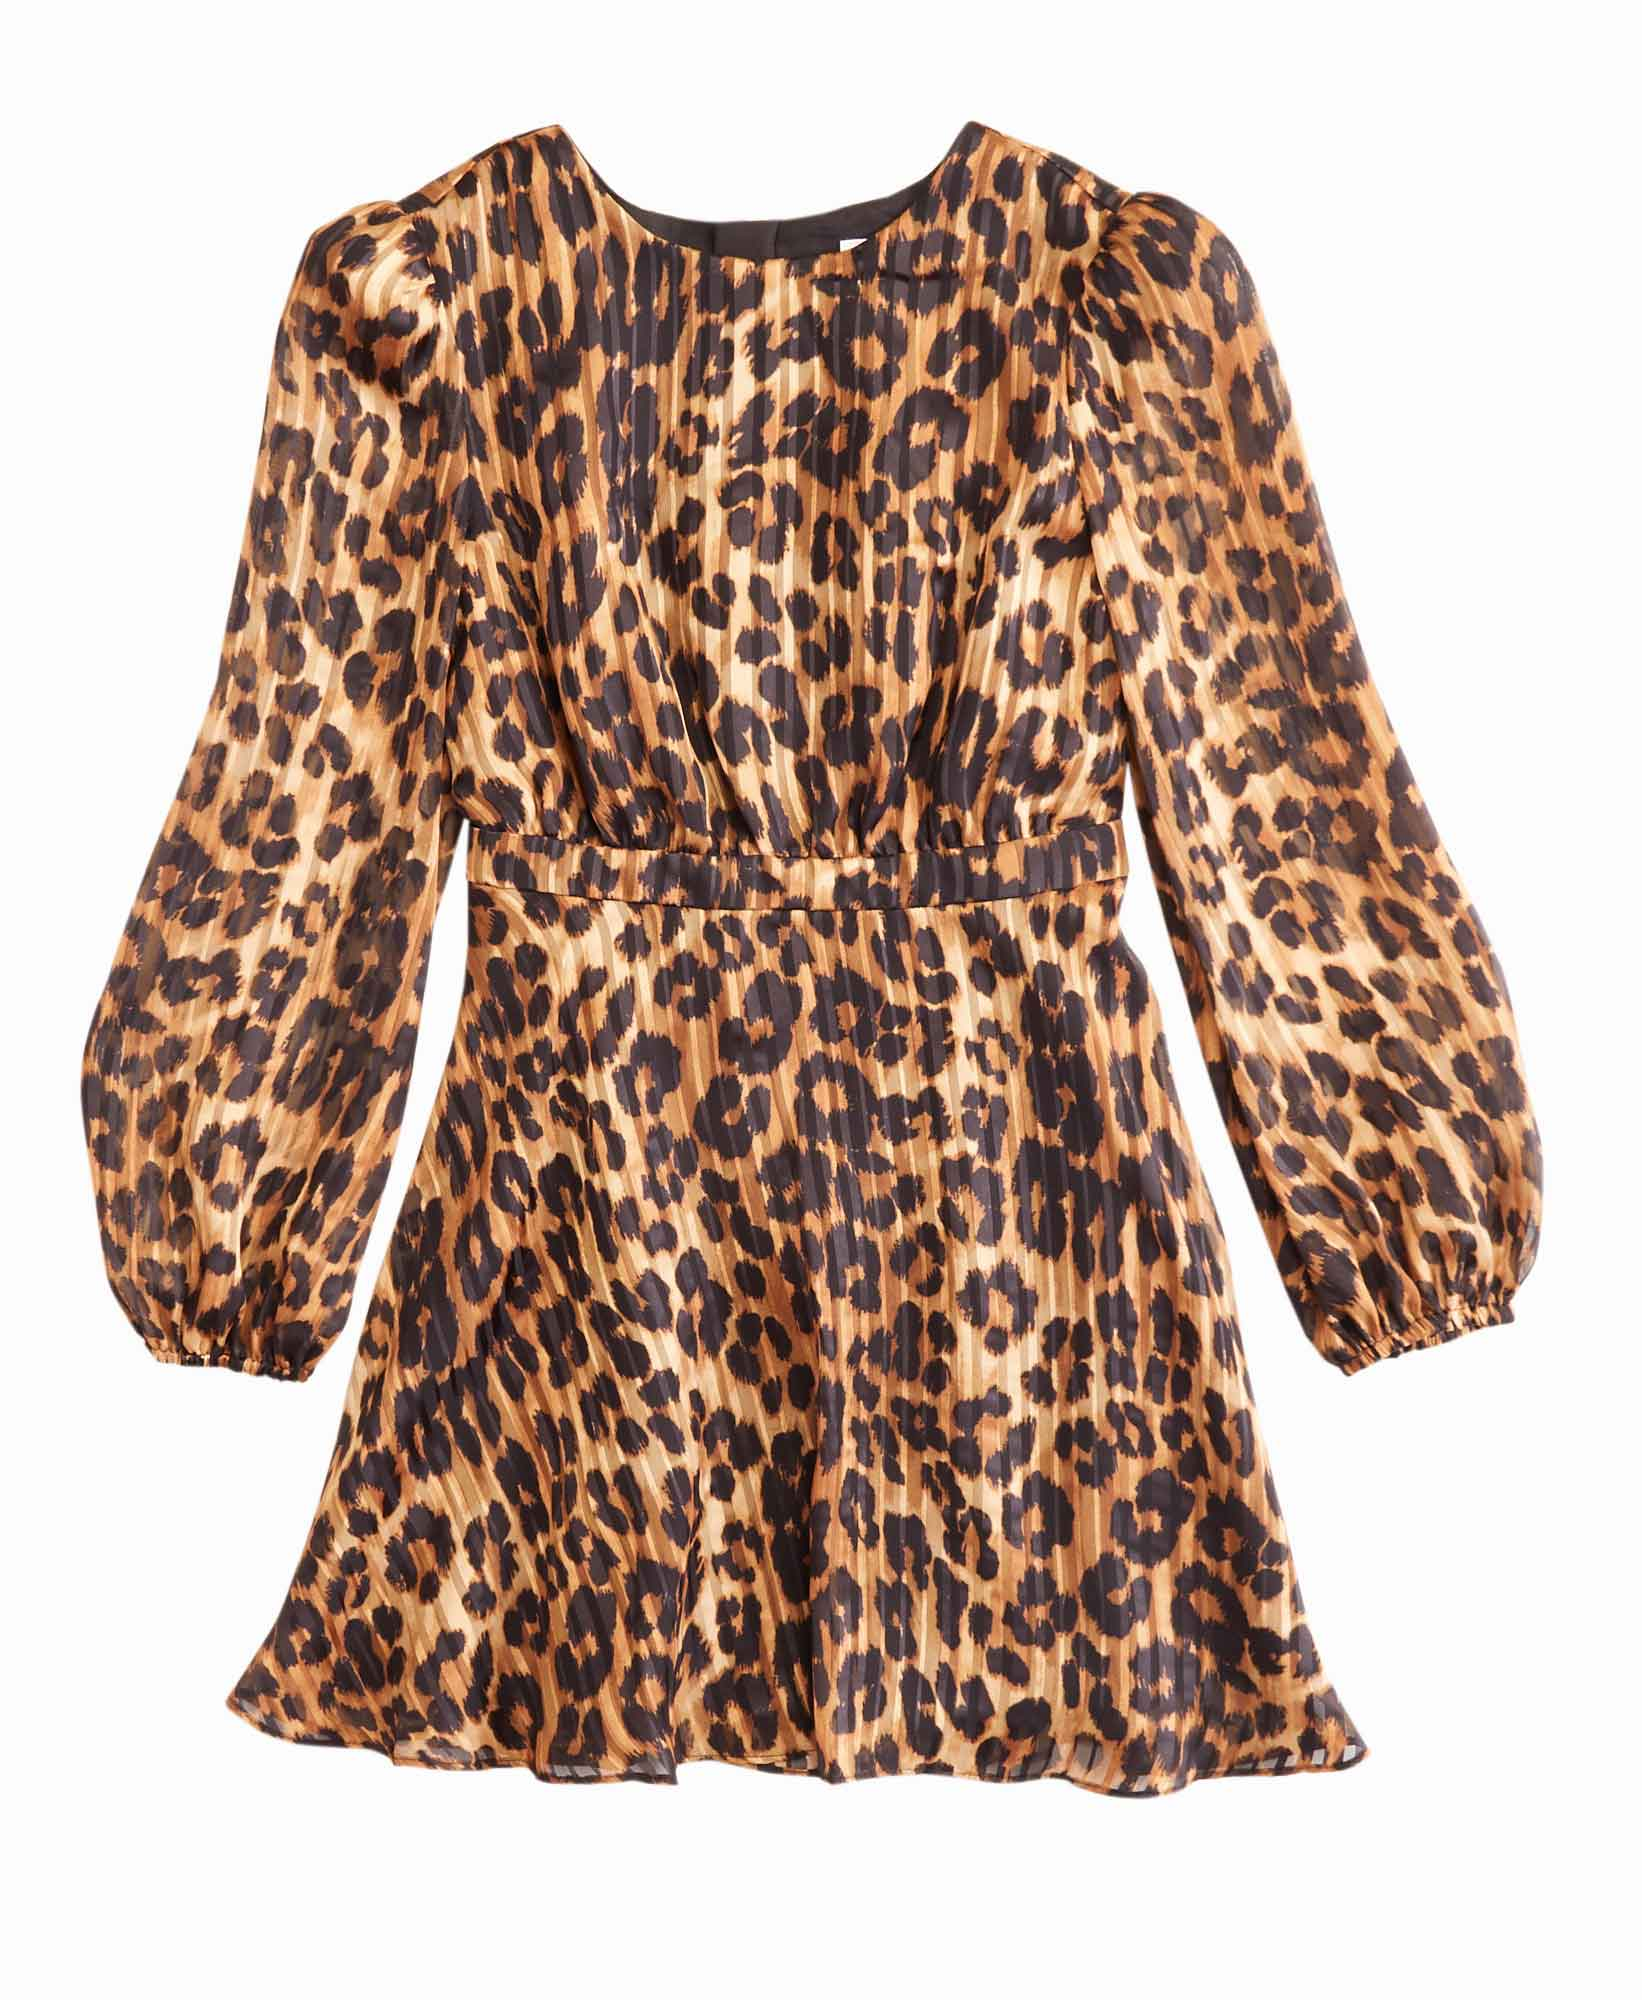 Milly Elma Cheetah Dress